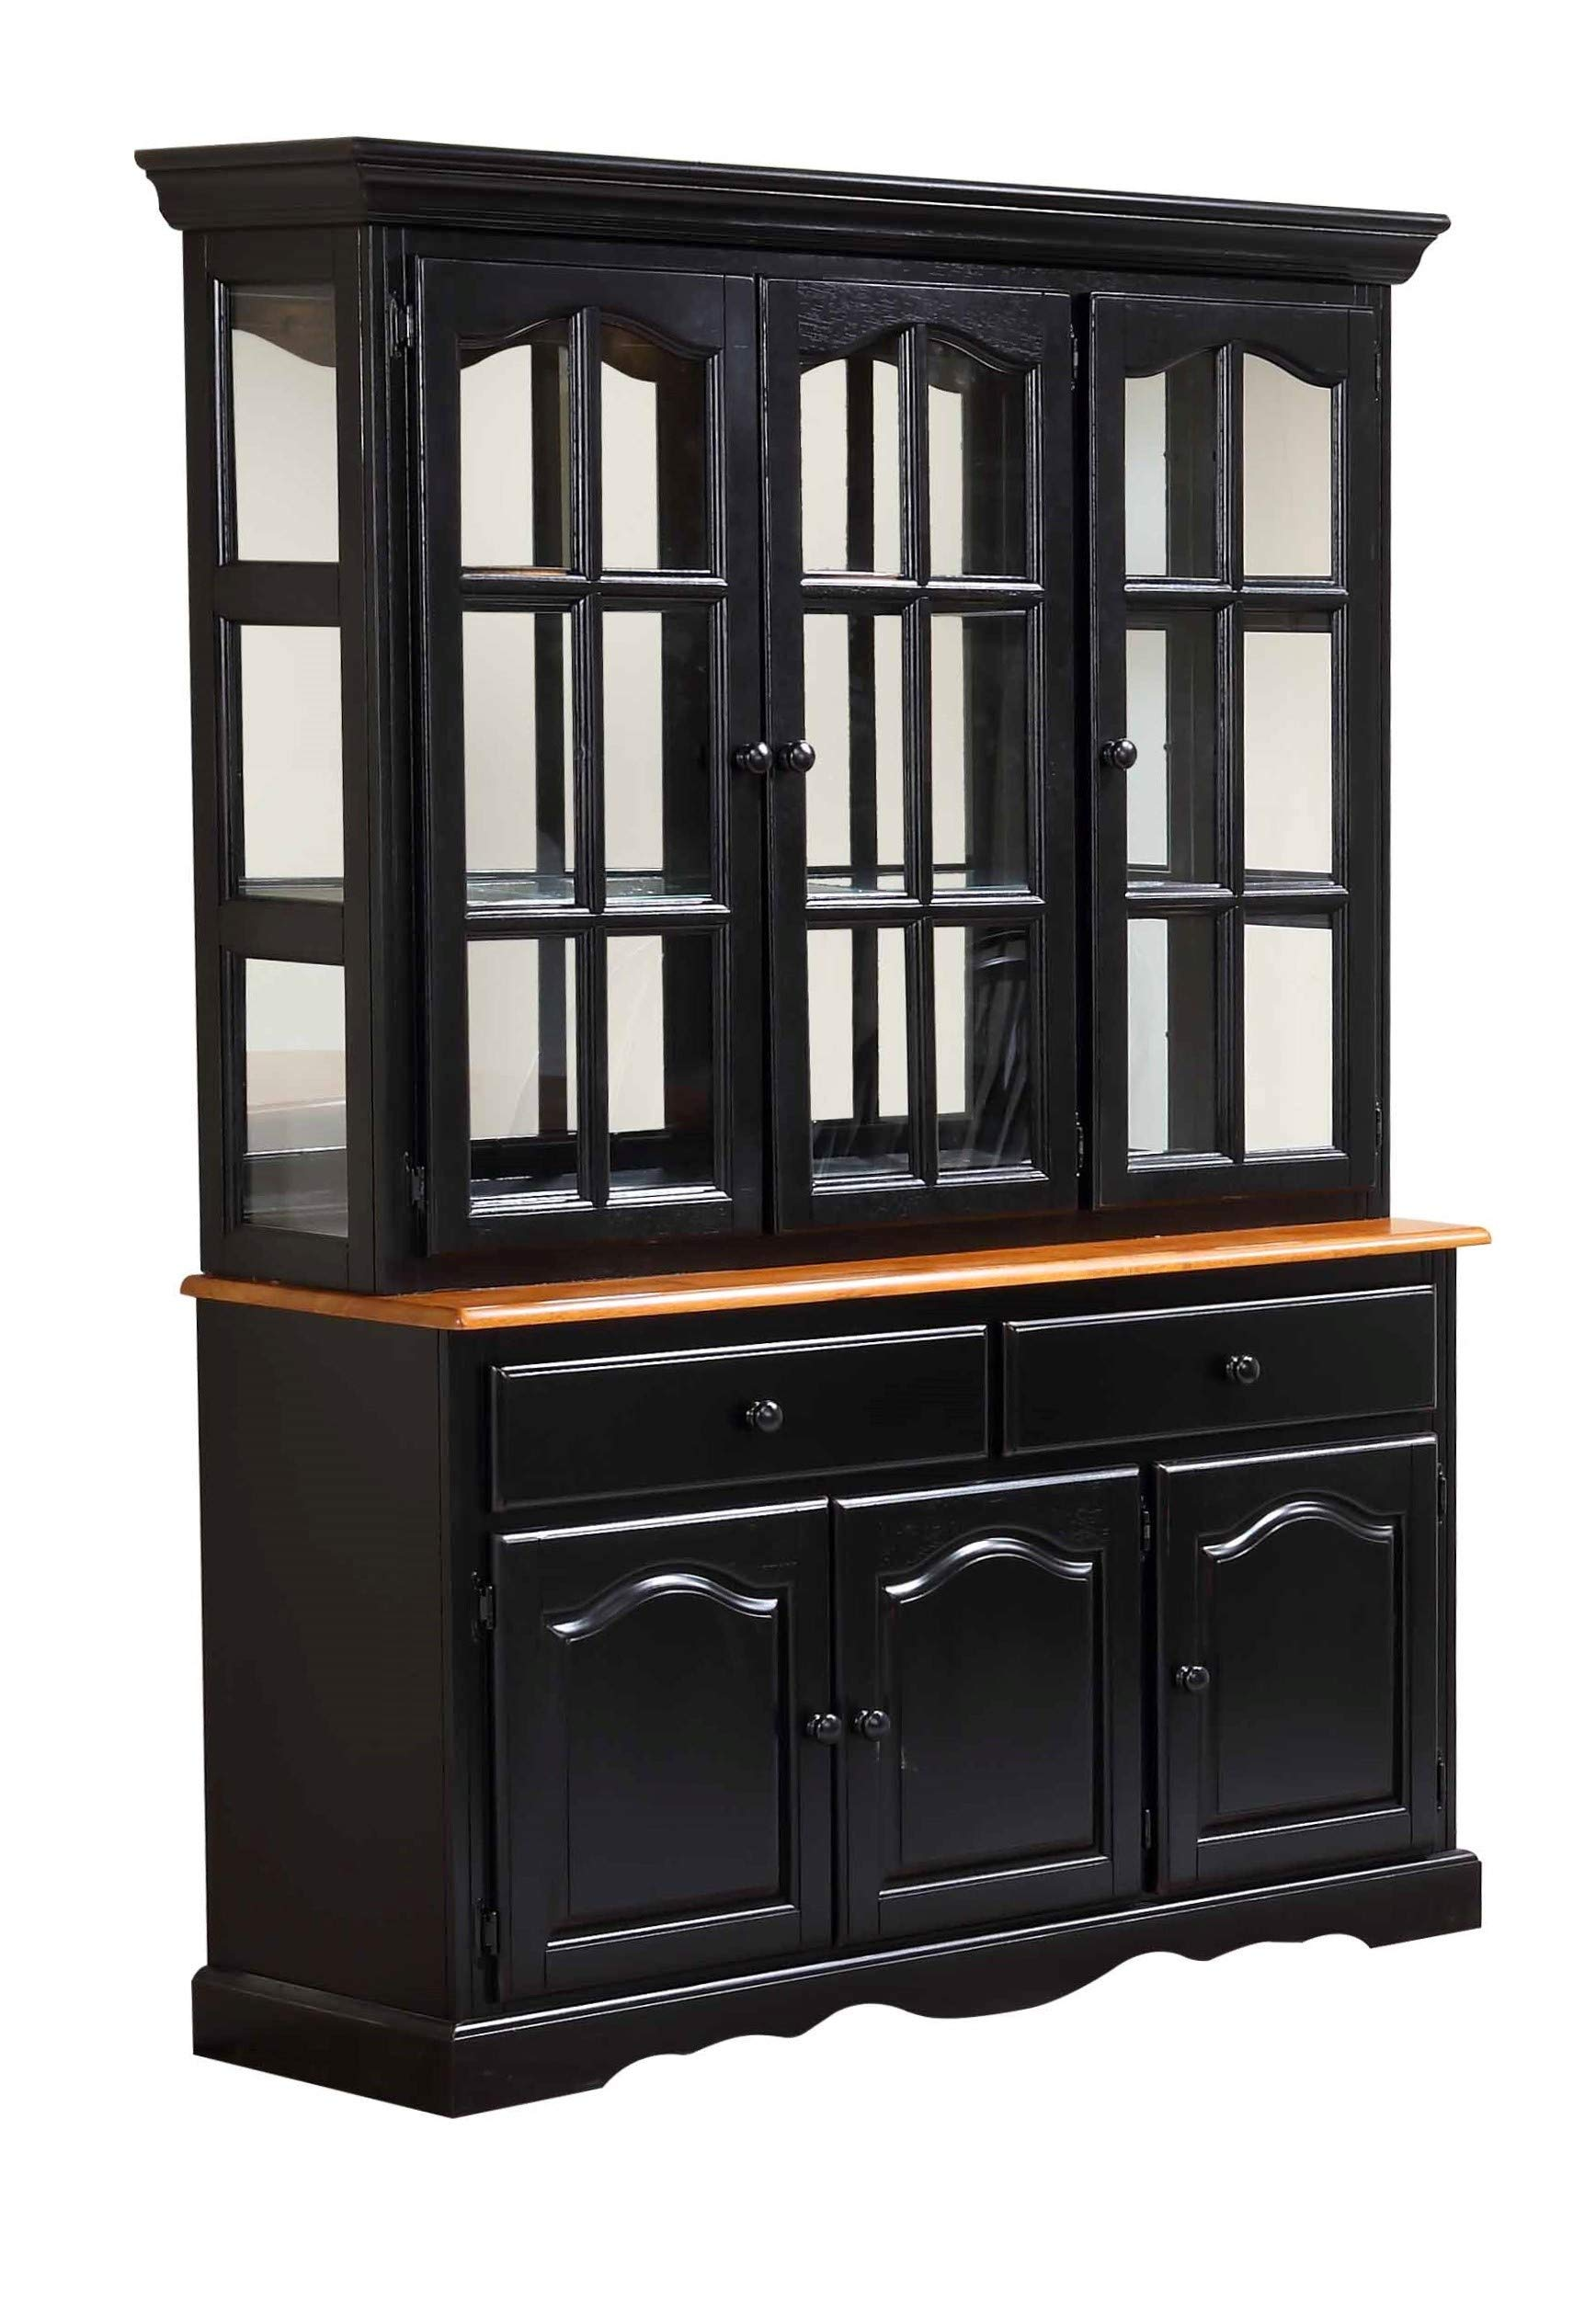 Sunset Trading Black Cherry Selections Buffet and Hutch, Three Door | Two Drawer, Distressed Antique by Sunset Trading